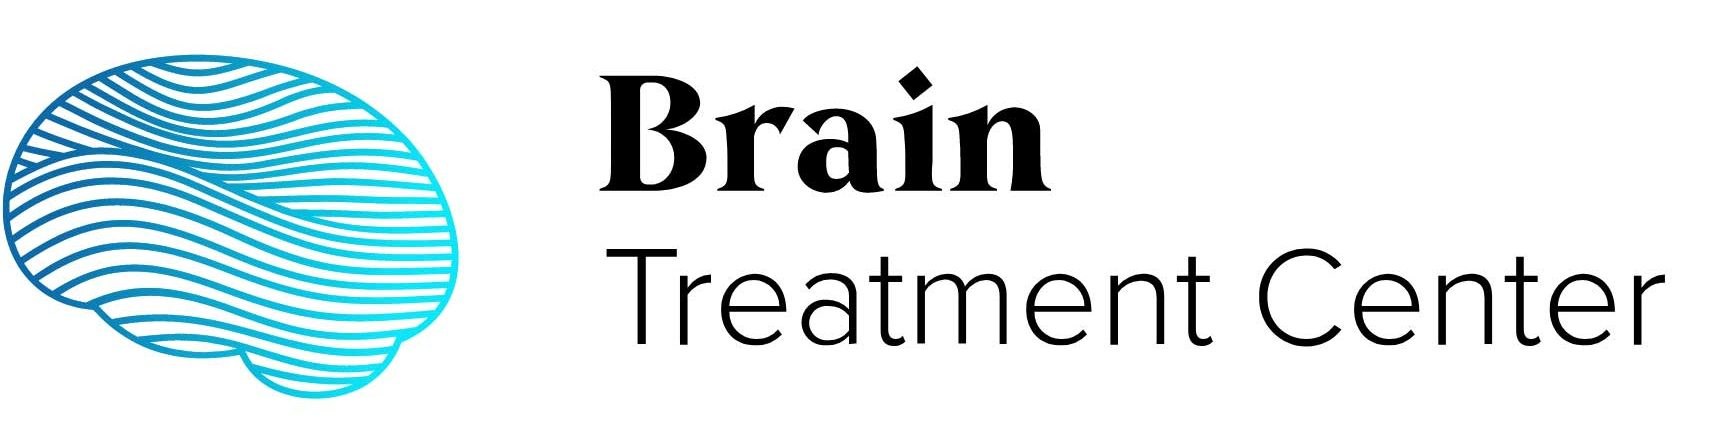 Brain Treatment Center Newport Beach